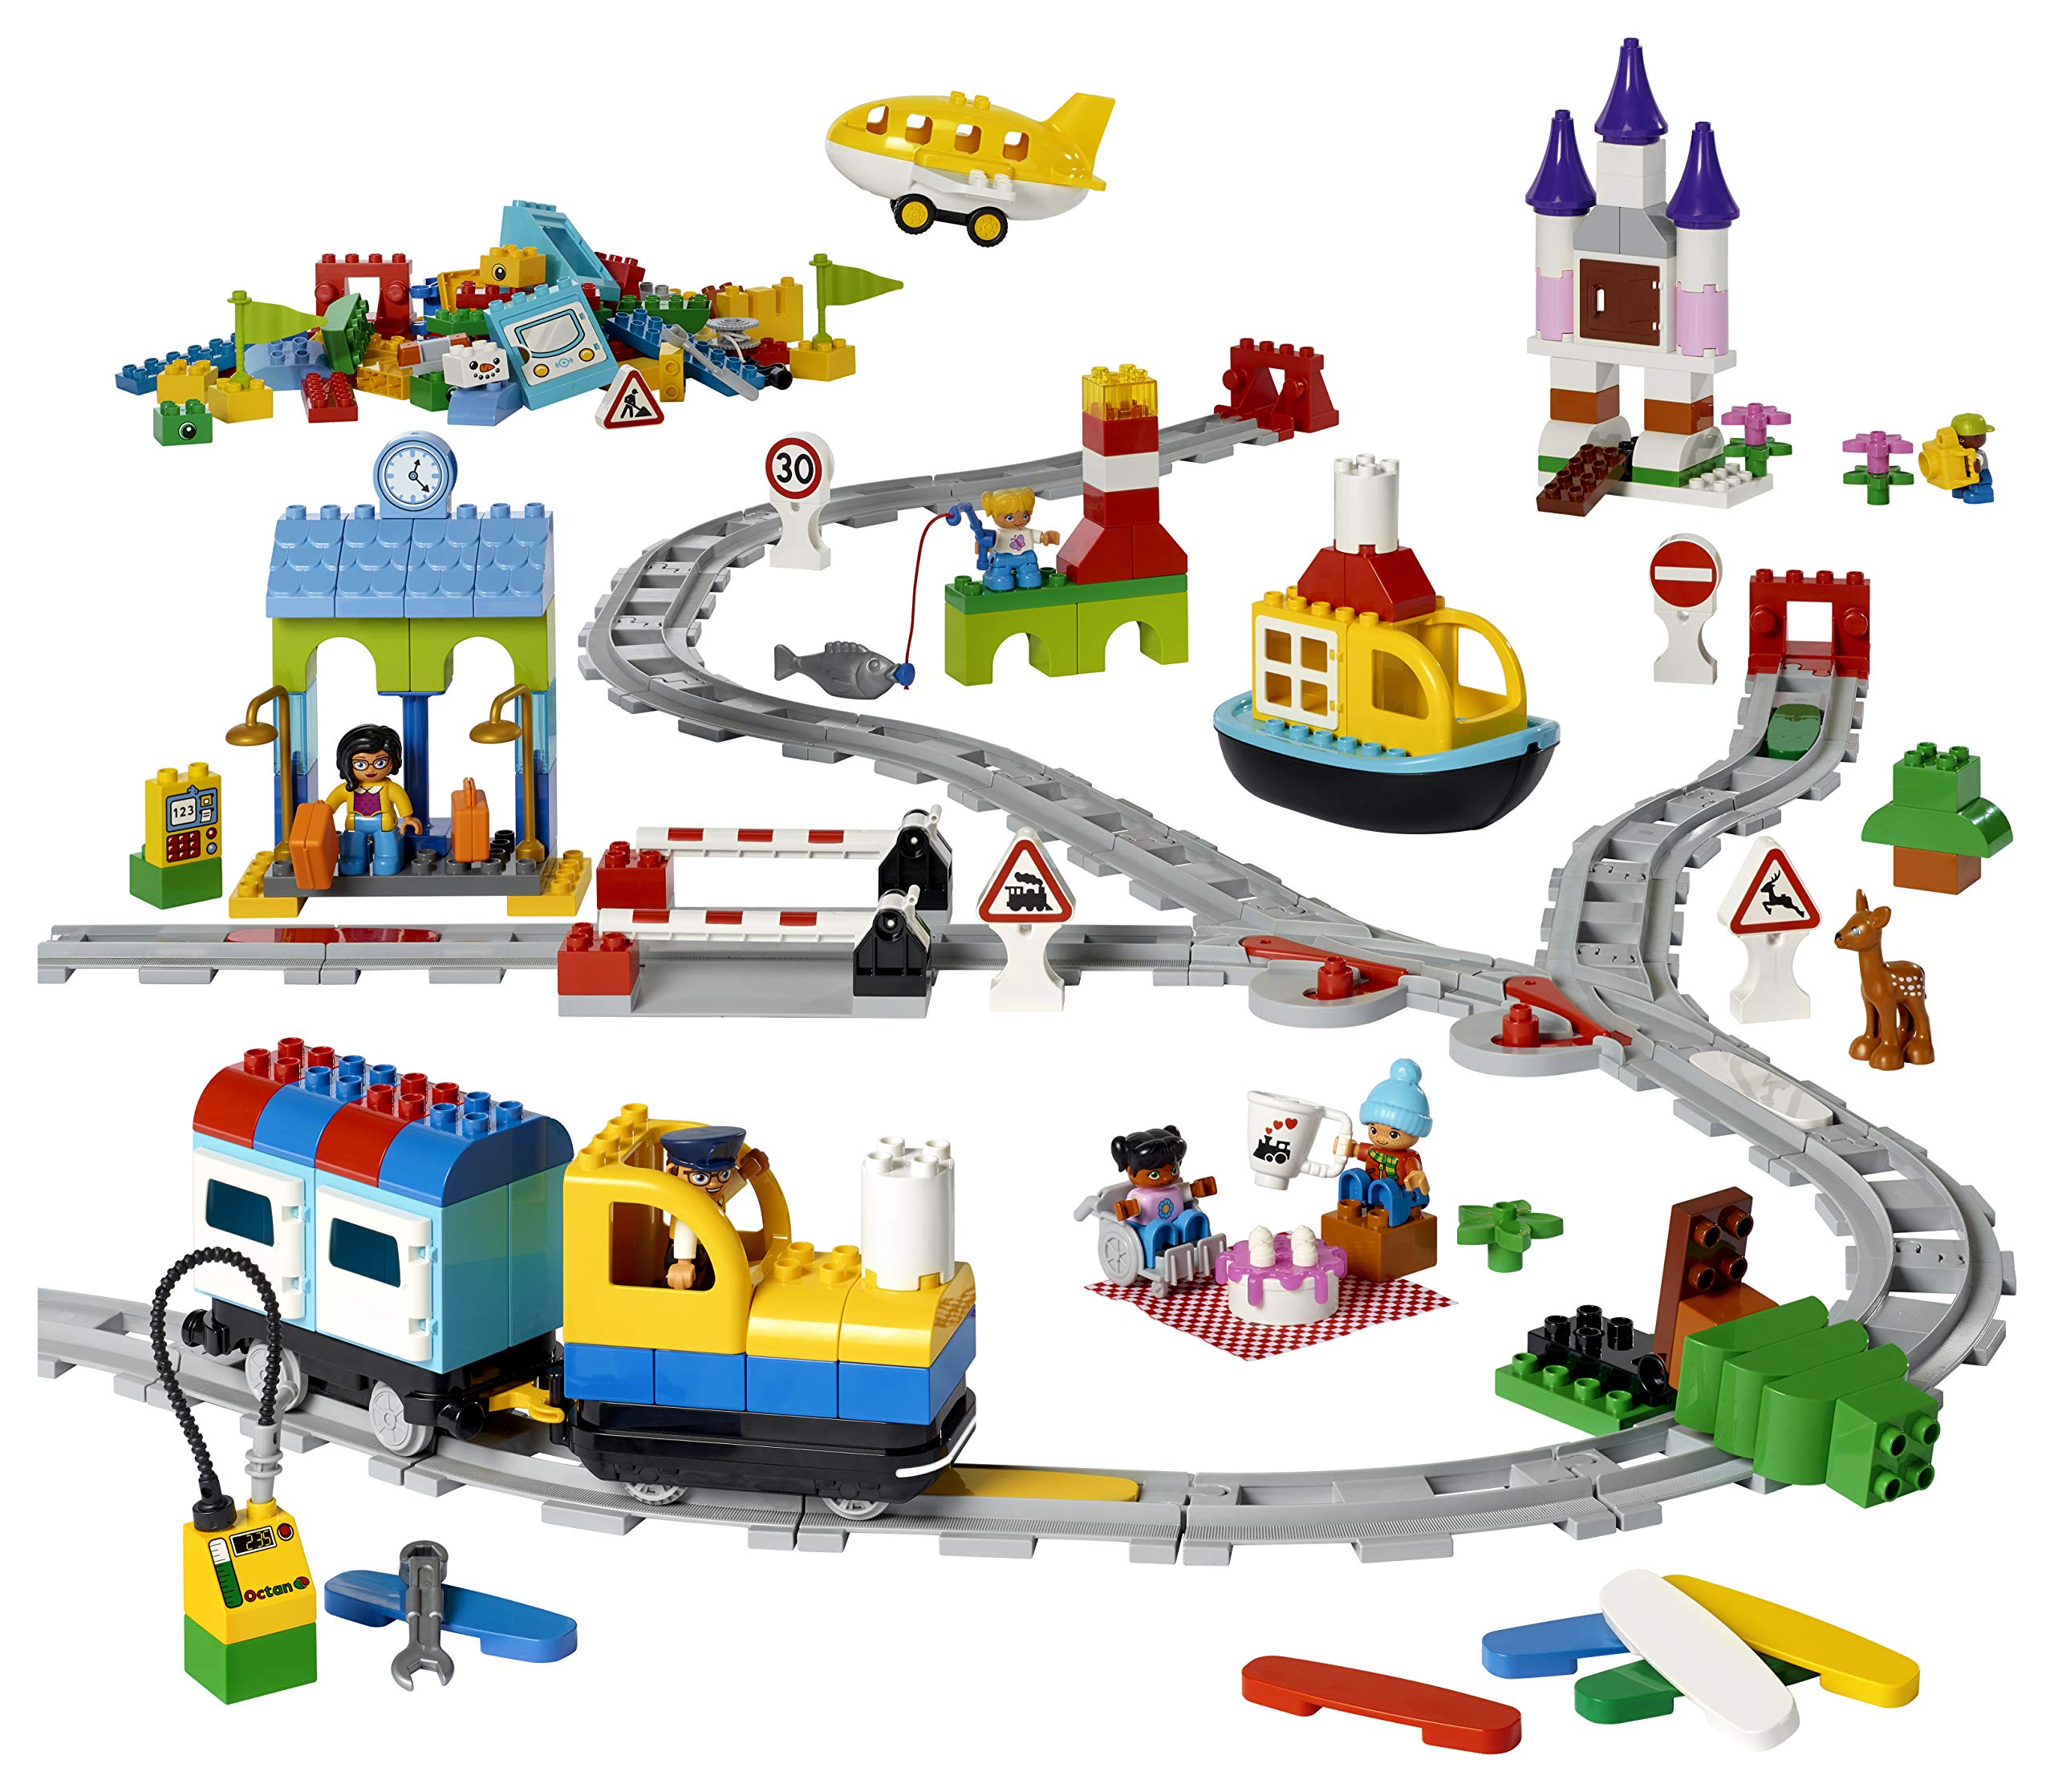 LEGO Education Duplo Coding Express 45025, Fun STEM Educational Toy, Introduction to Steam Learning for Girls & Boys Ages 2 & Up (234Piece ) by LEGO Education (Image #3)